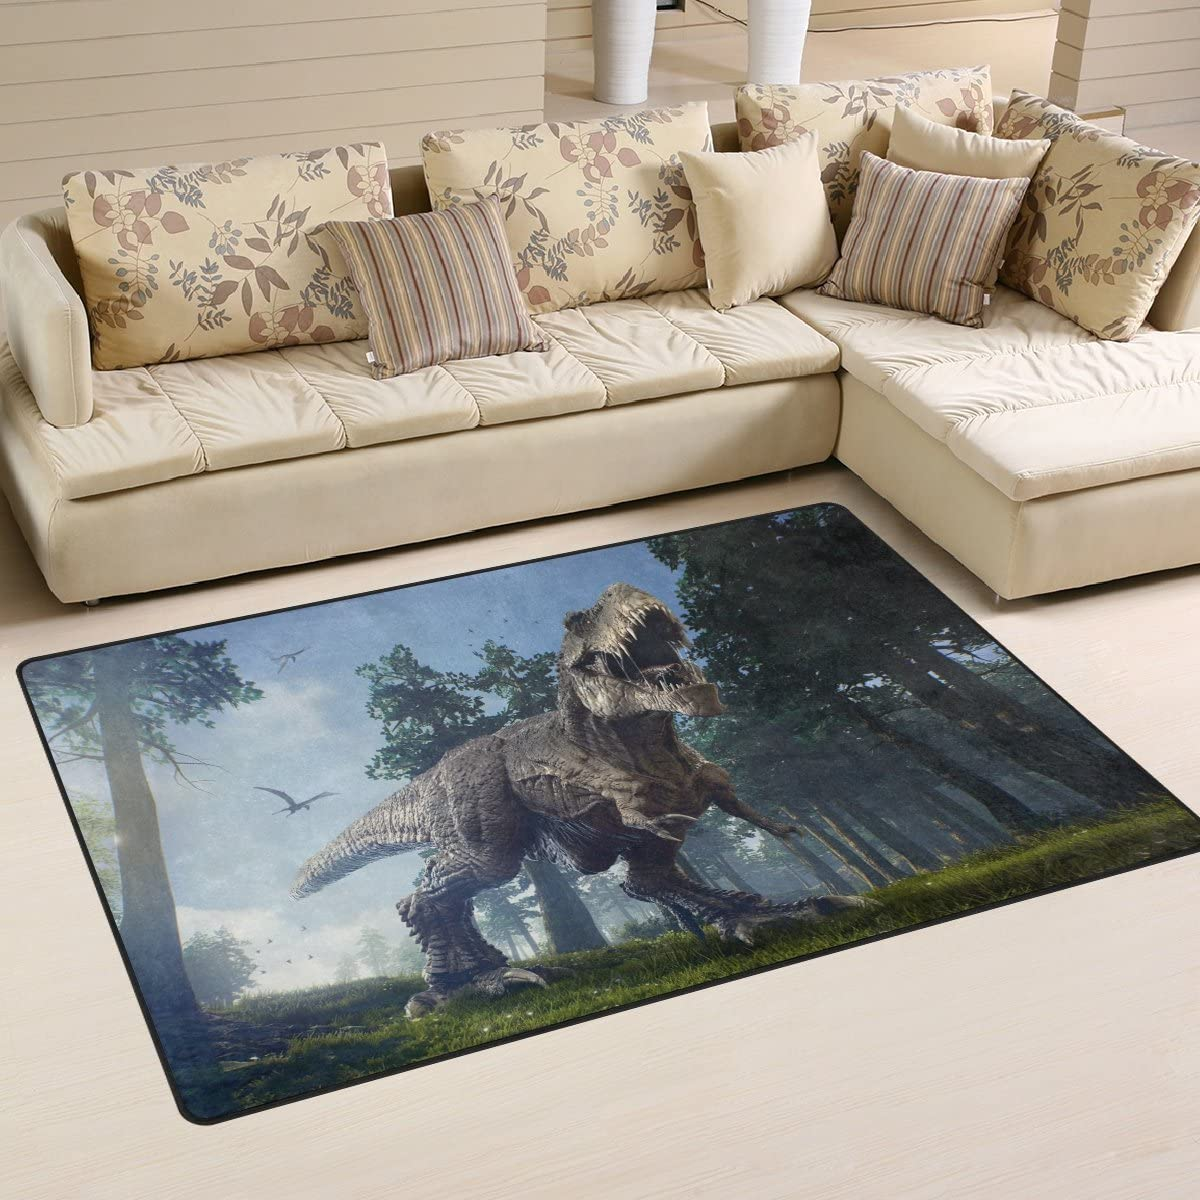 Yochoice Non-slip Area Rugs Home Decor, Vintage Rex Roaring Dinosaur Blue Sky Forest Floor Mat Living Room Bedroom Carpets Doormats 60 x 39 inches